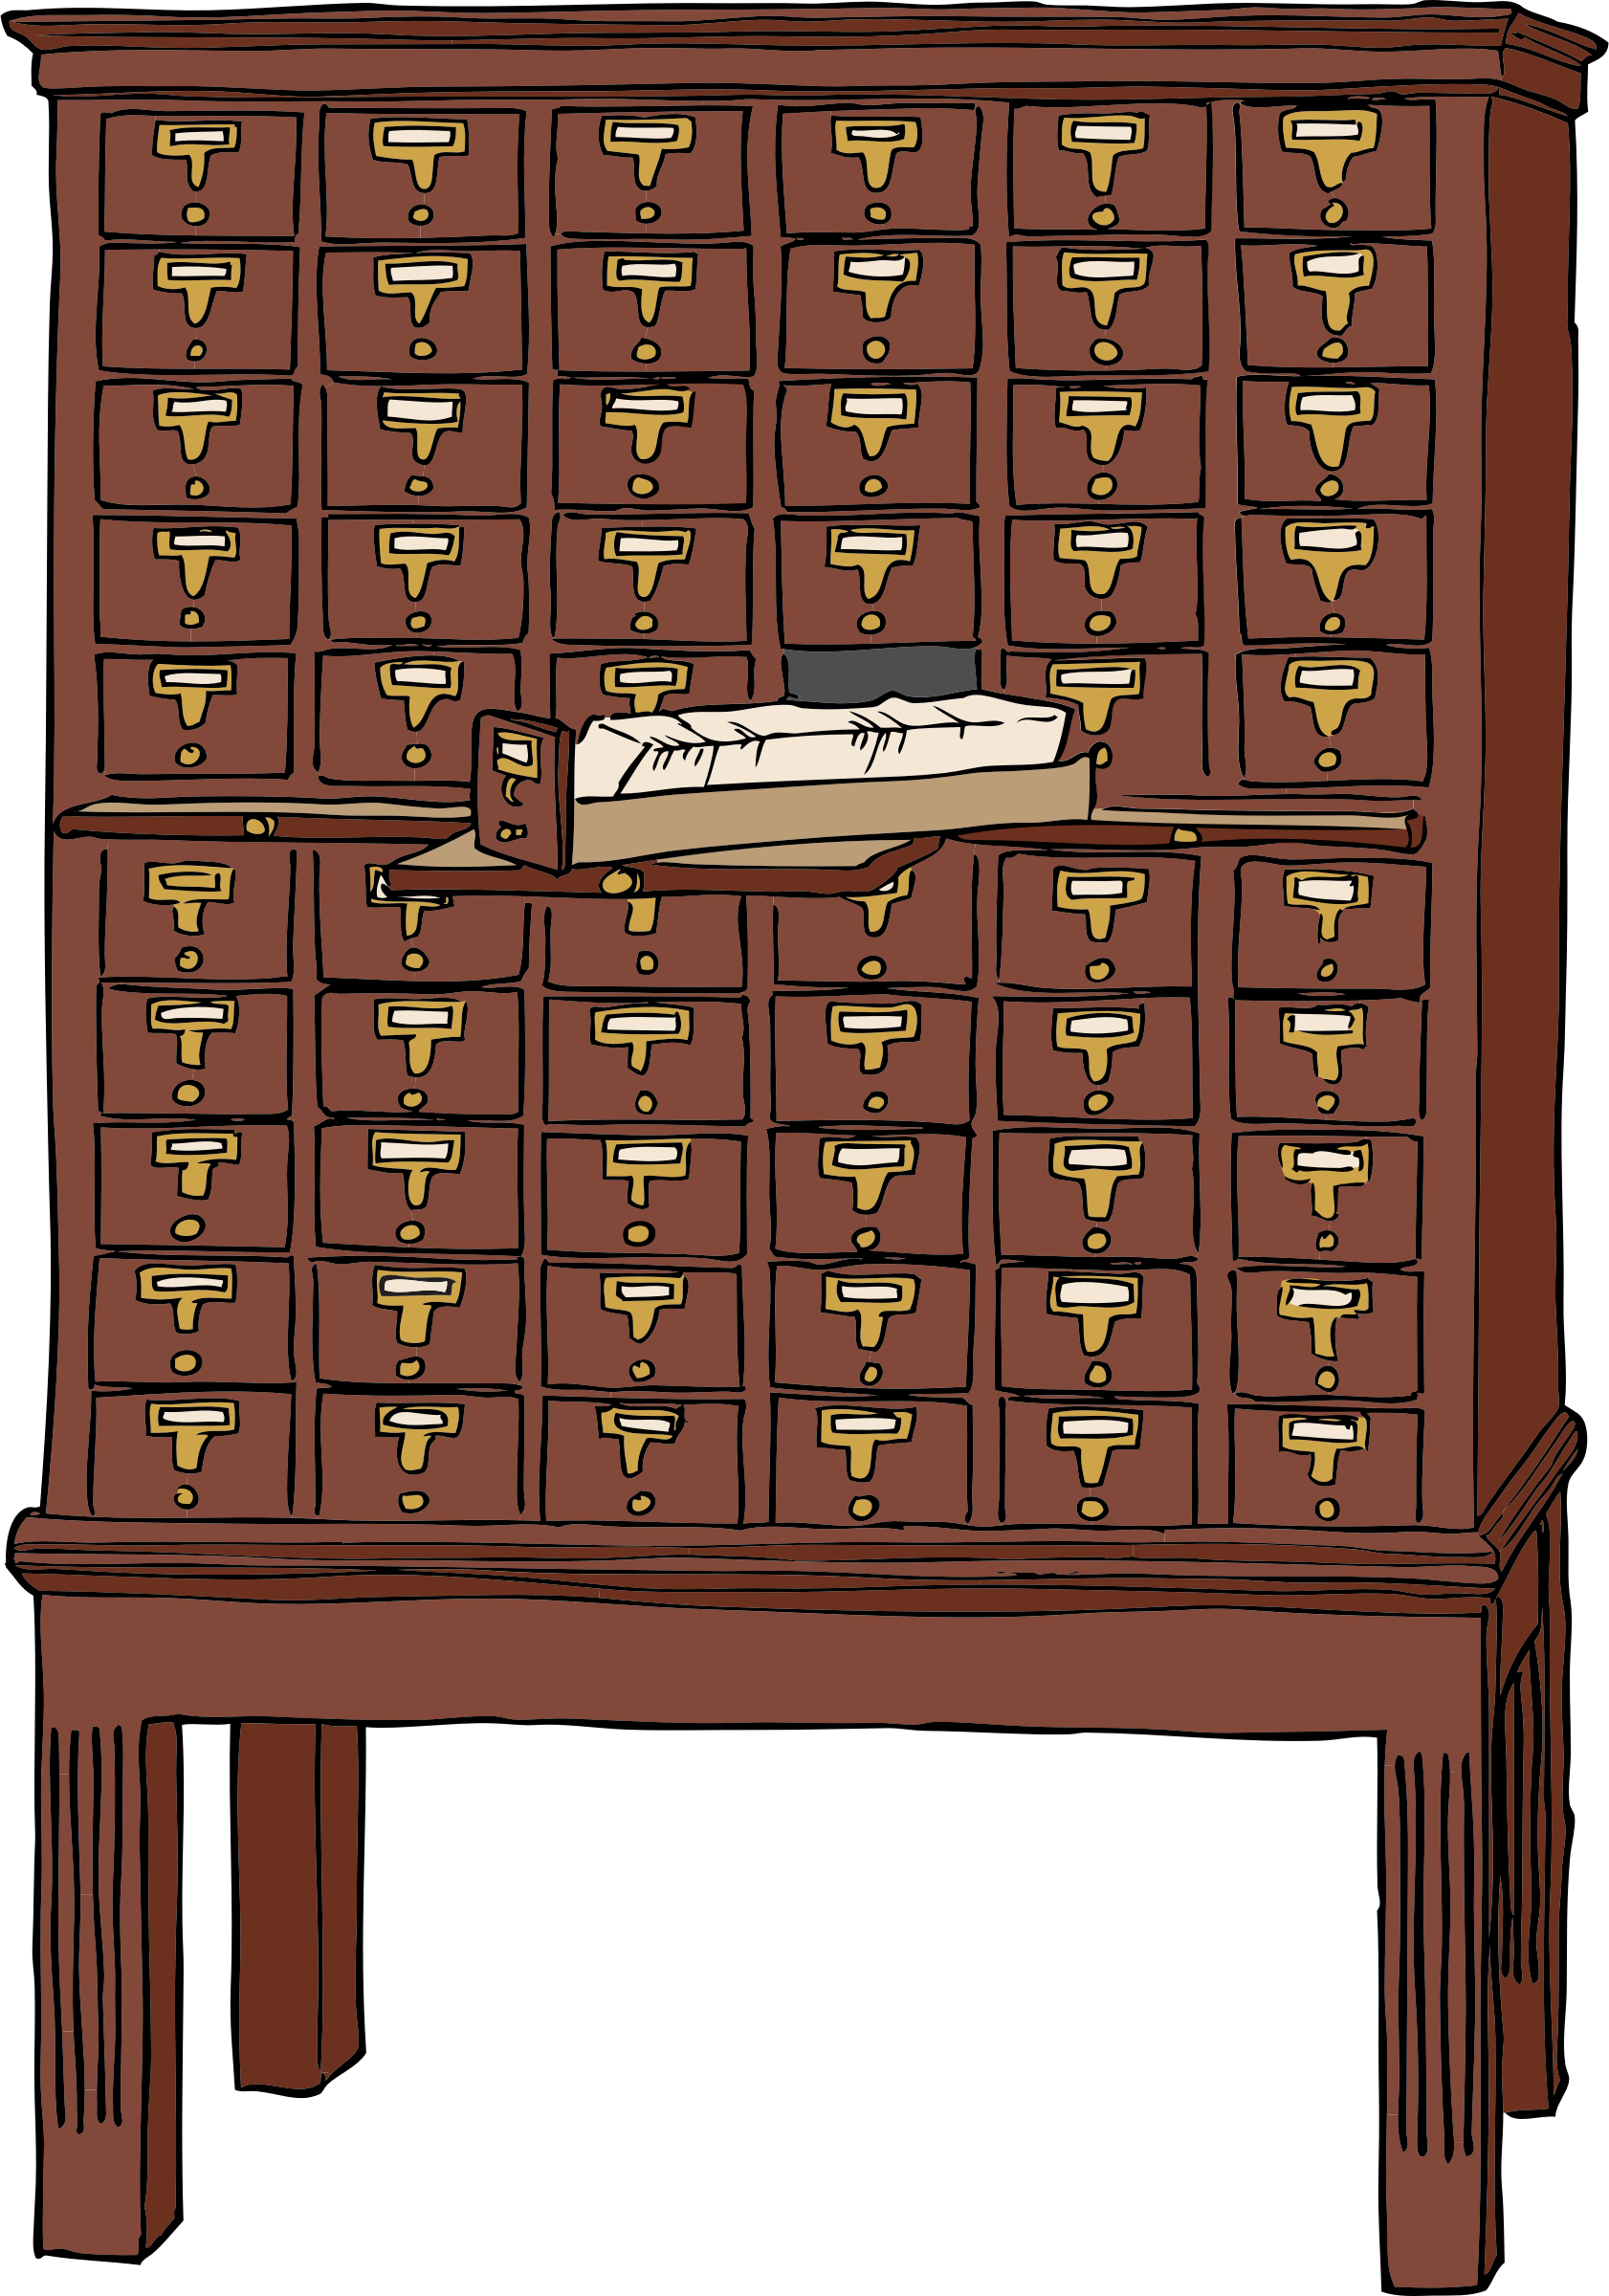 Card Catalog by SteveLambert